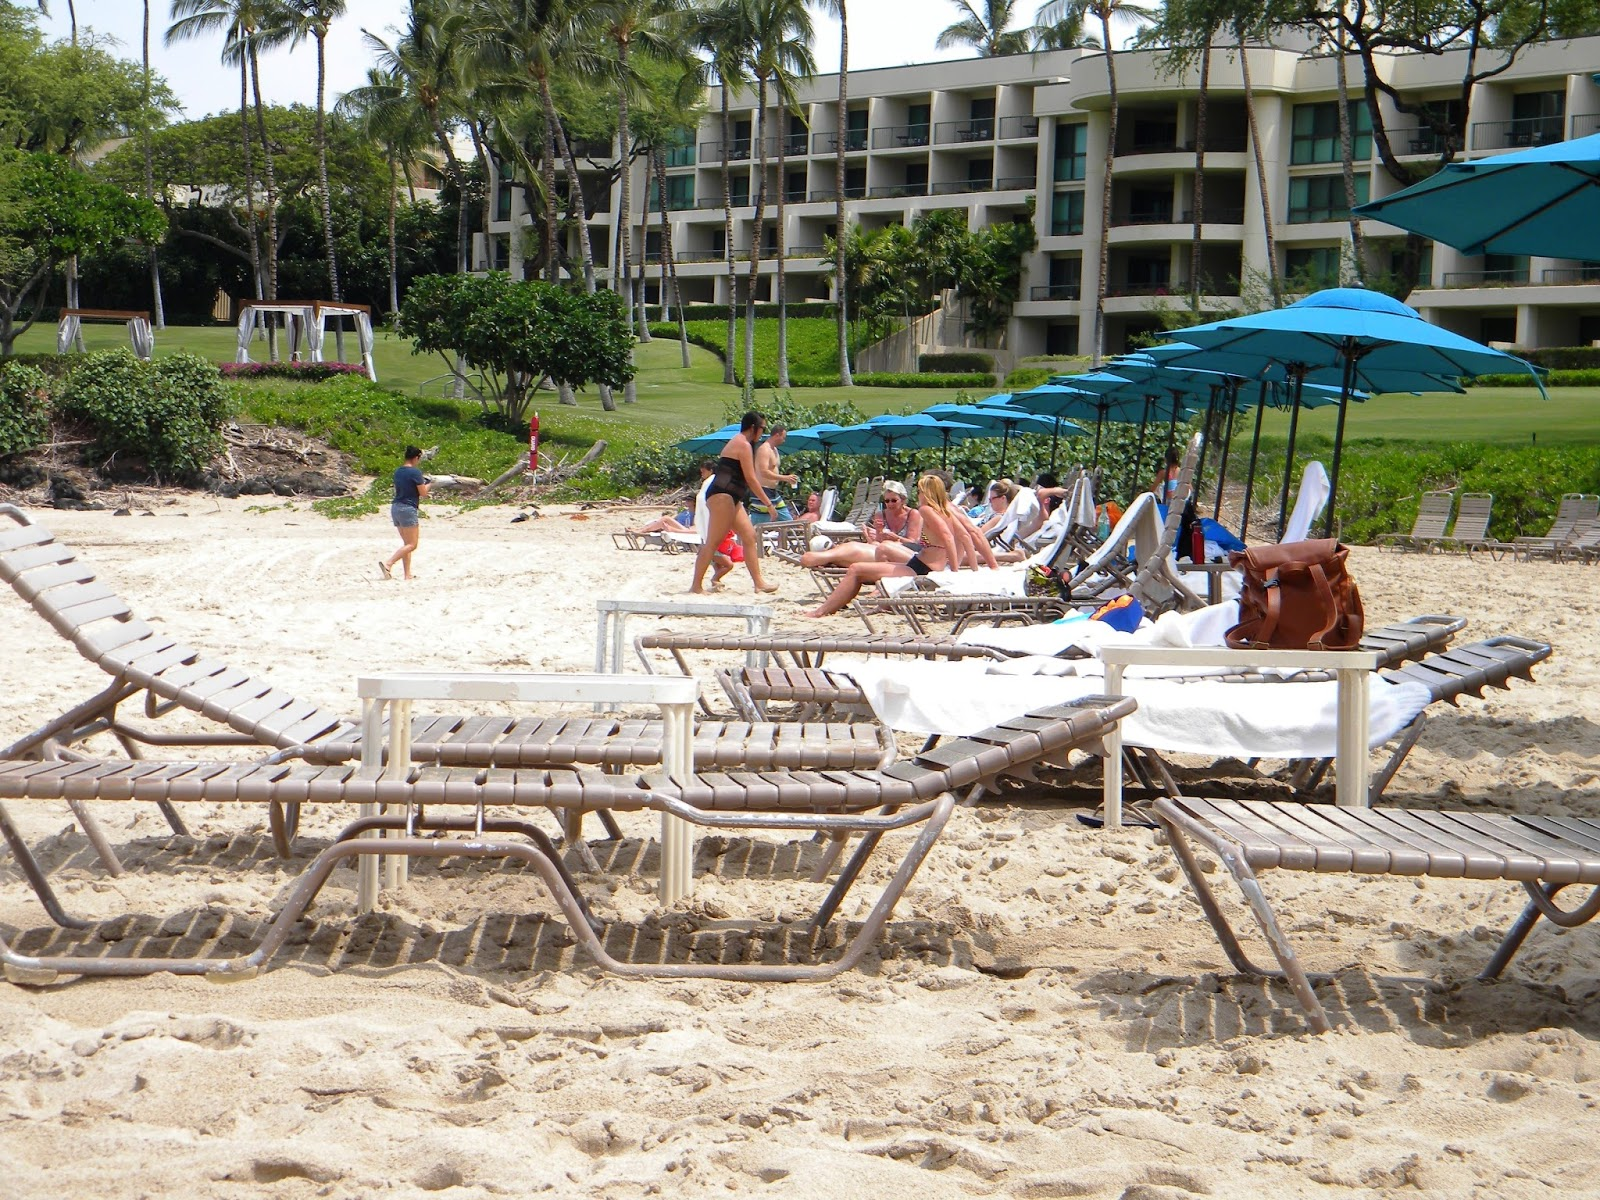 Hotel Revenue Surges, Legislature Mulls Transient Taxes, Ige AC Plan Lags,  Board Of Education Reduces Proposed Impact Fee On Rail Route, Grad Students  Again ...